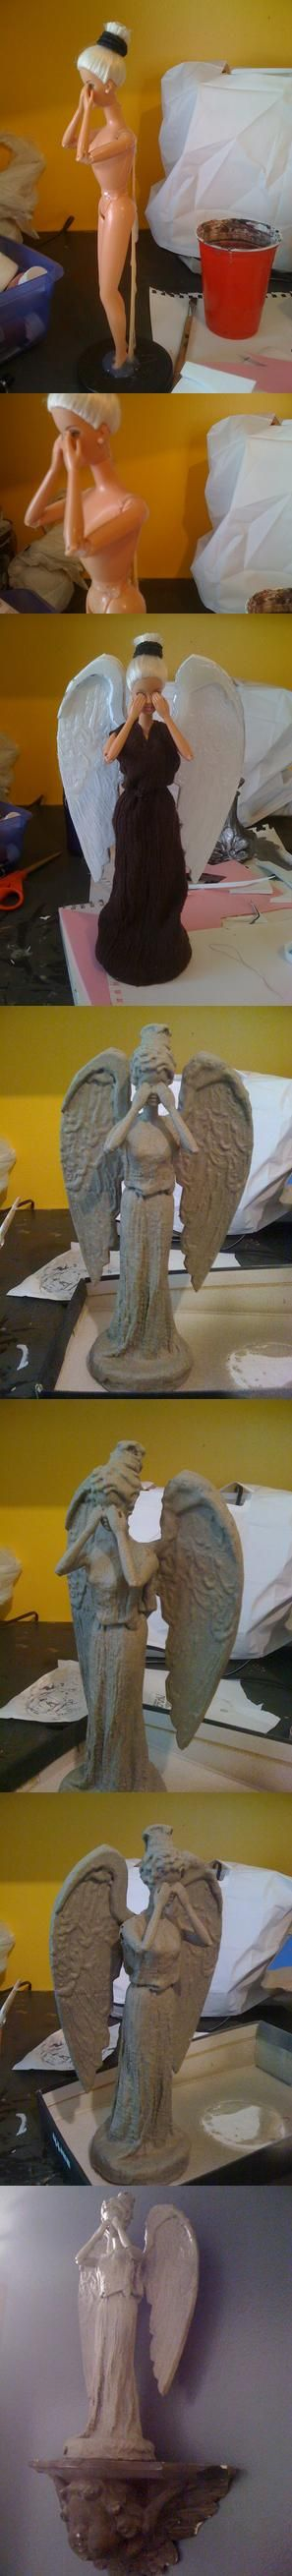 How to Make a Weeping Angel Barbie lol